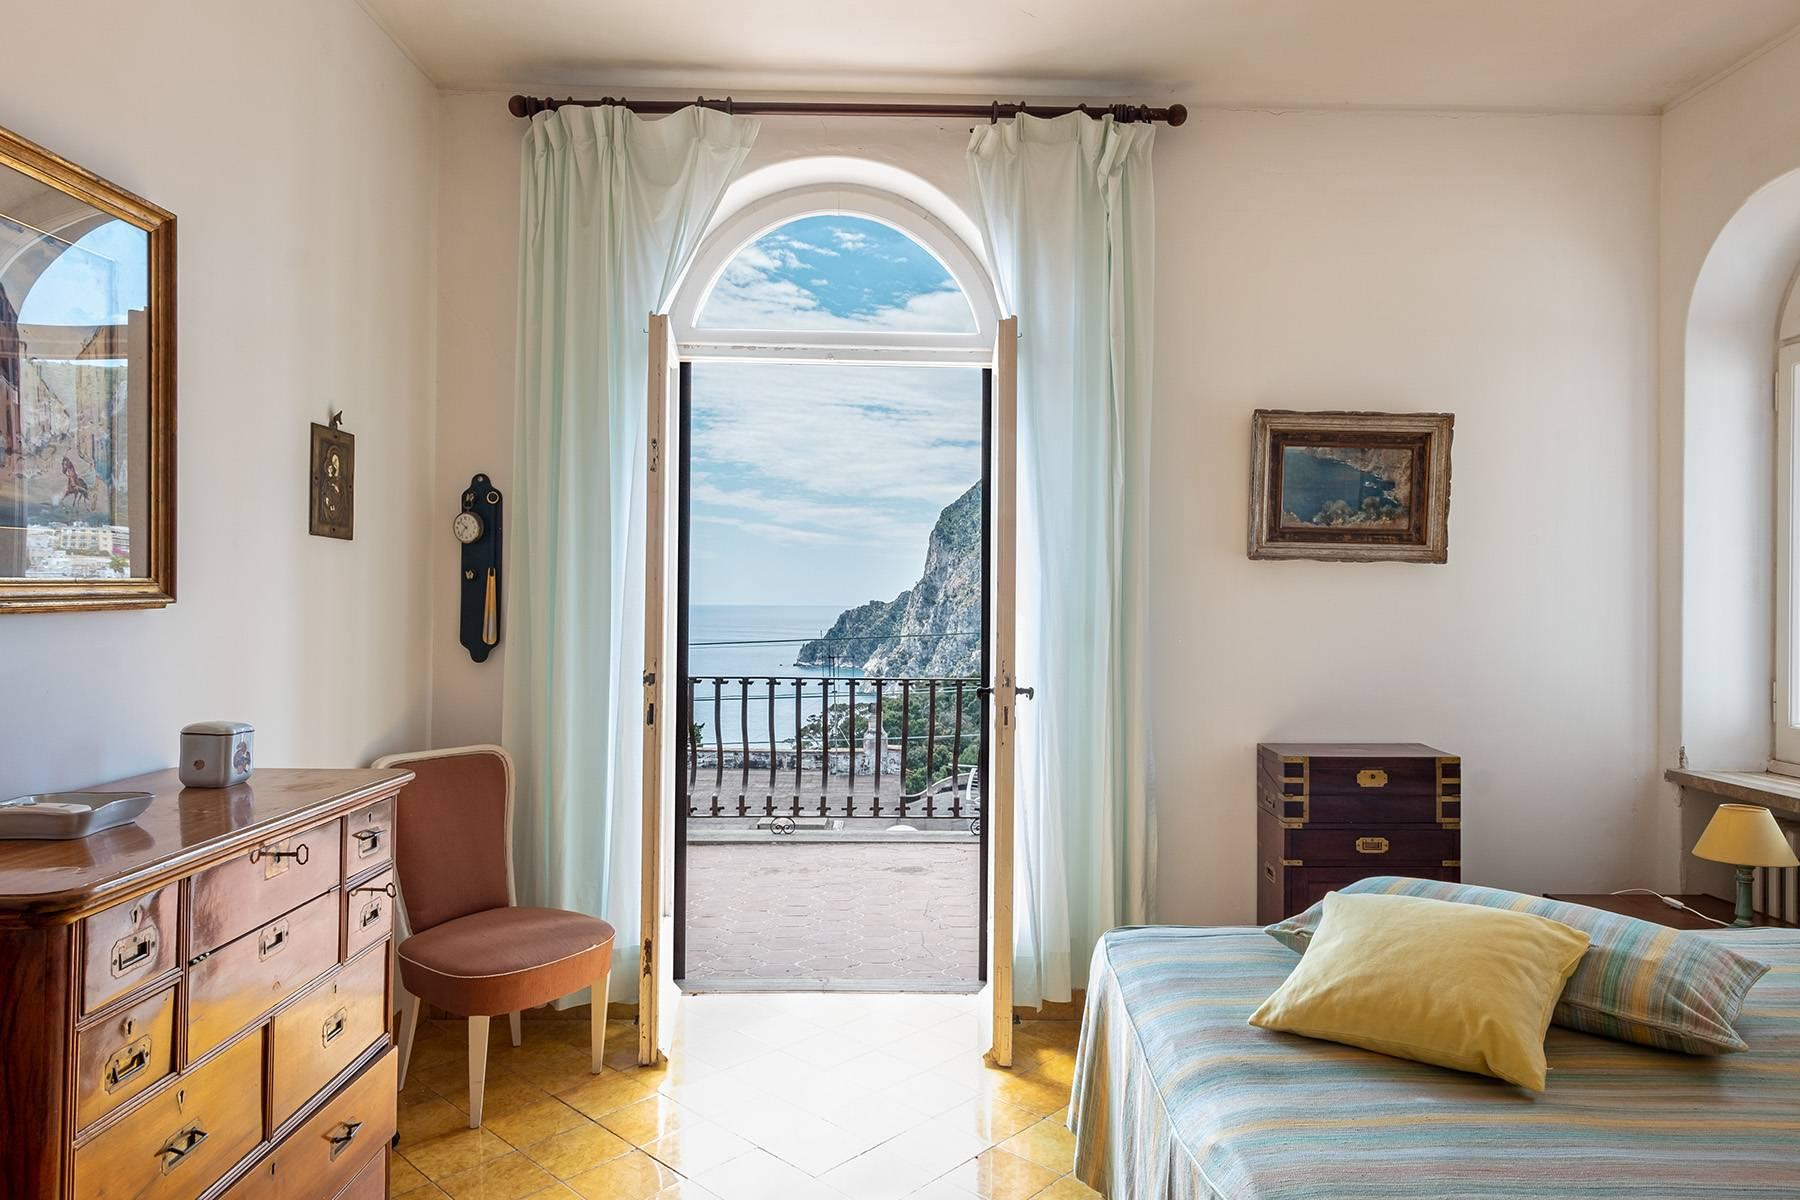 Magnificent villa in the center of Capri overlooking the sea - 15